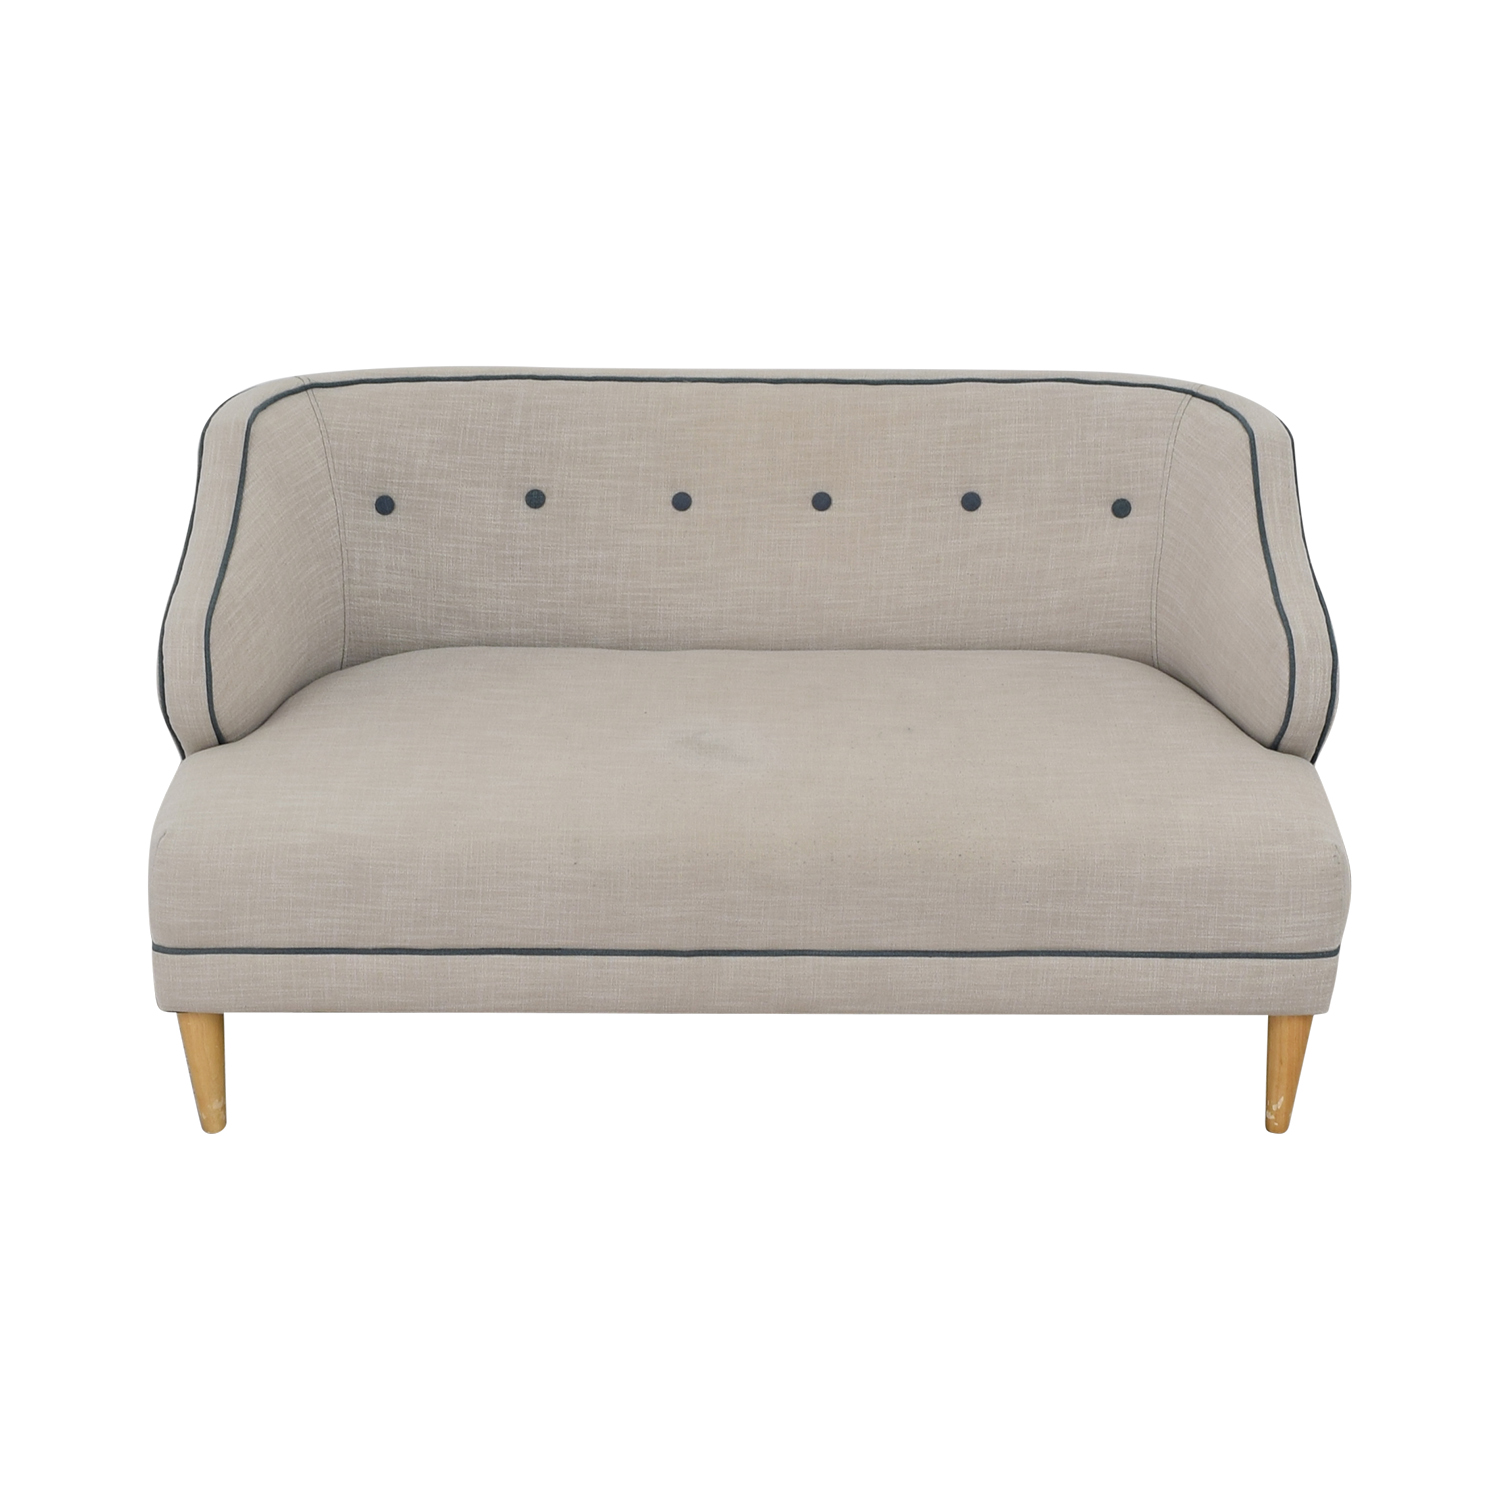 West Elm West Elm Custom Beige Upholstered Captain Loveseat used